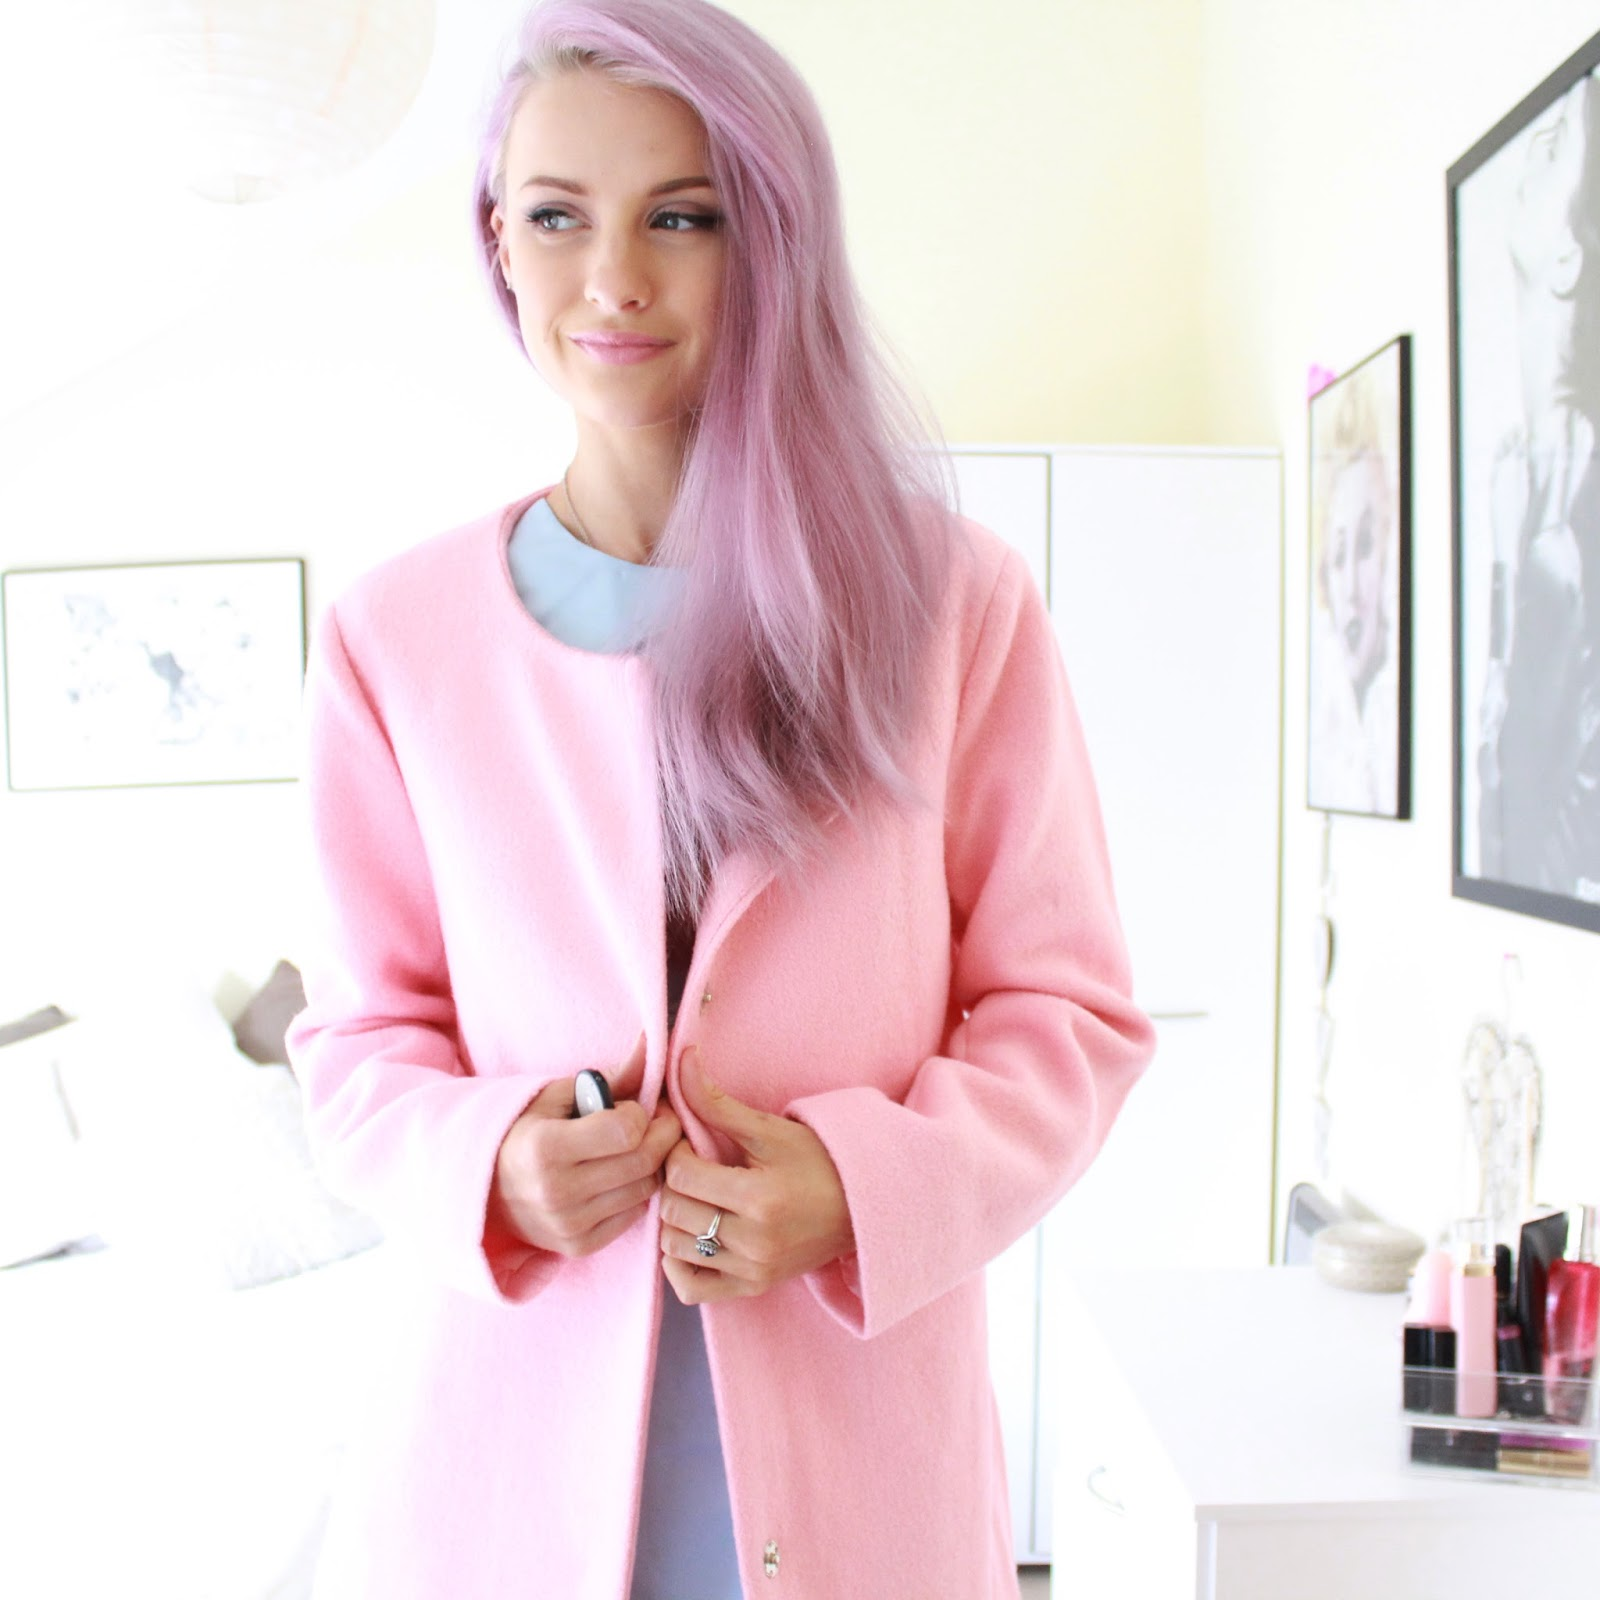 The Baby Pink Jacket with the Baby Blue Dress - Inthefrow